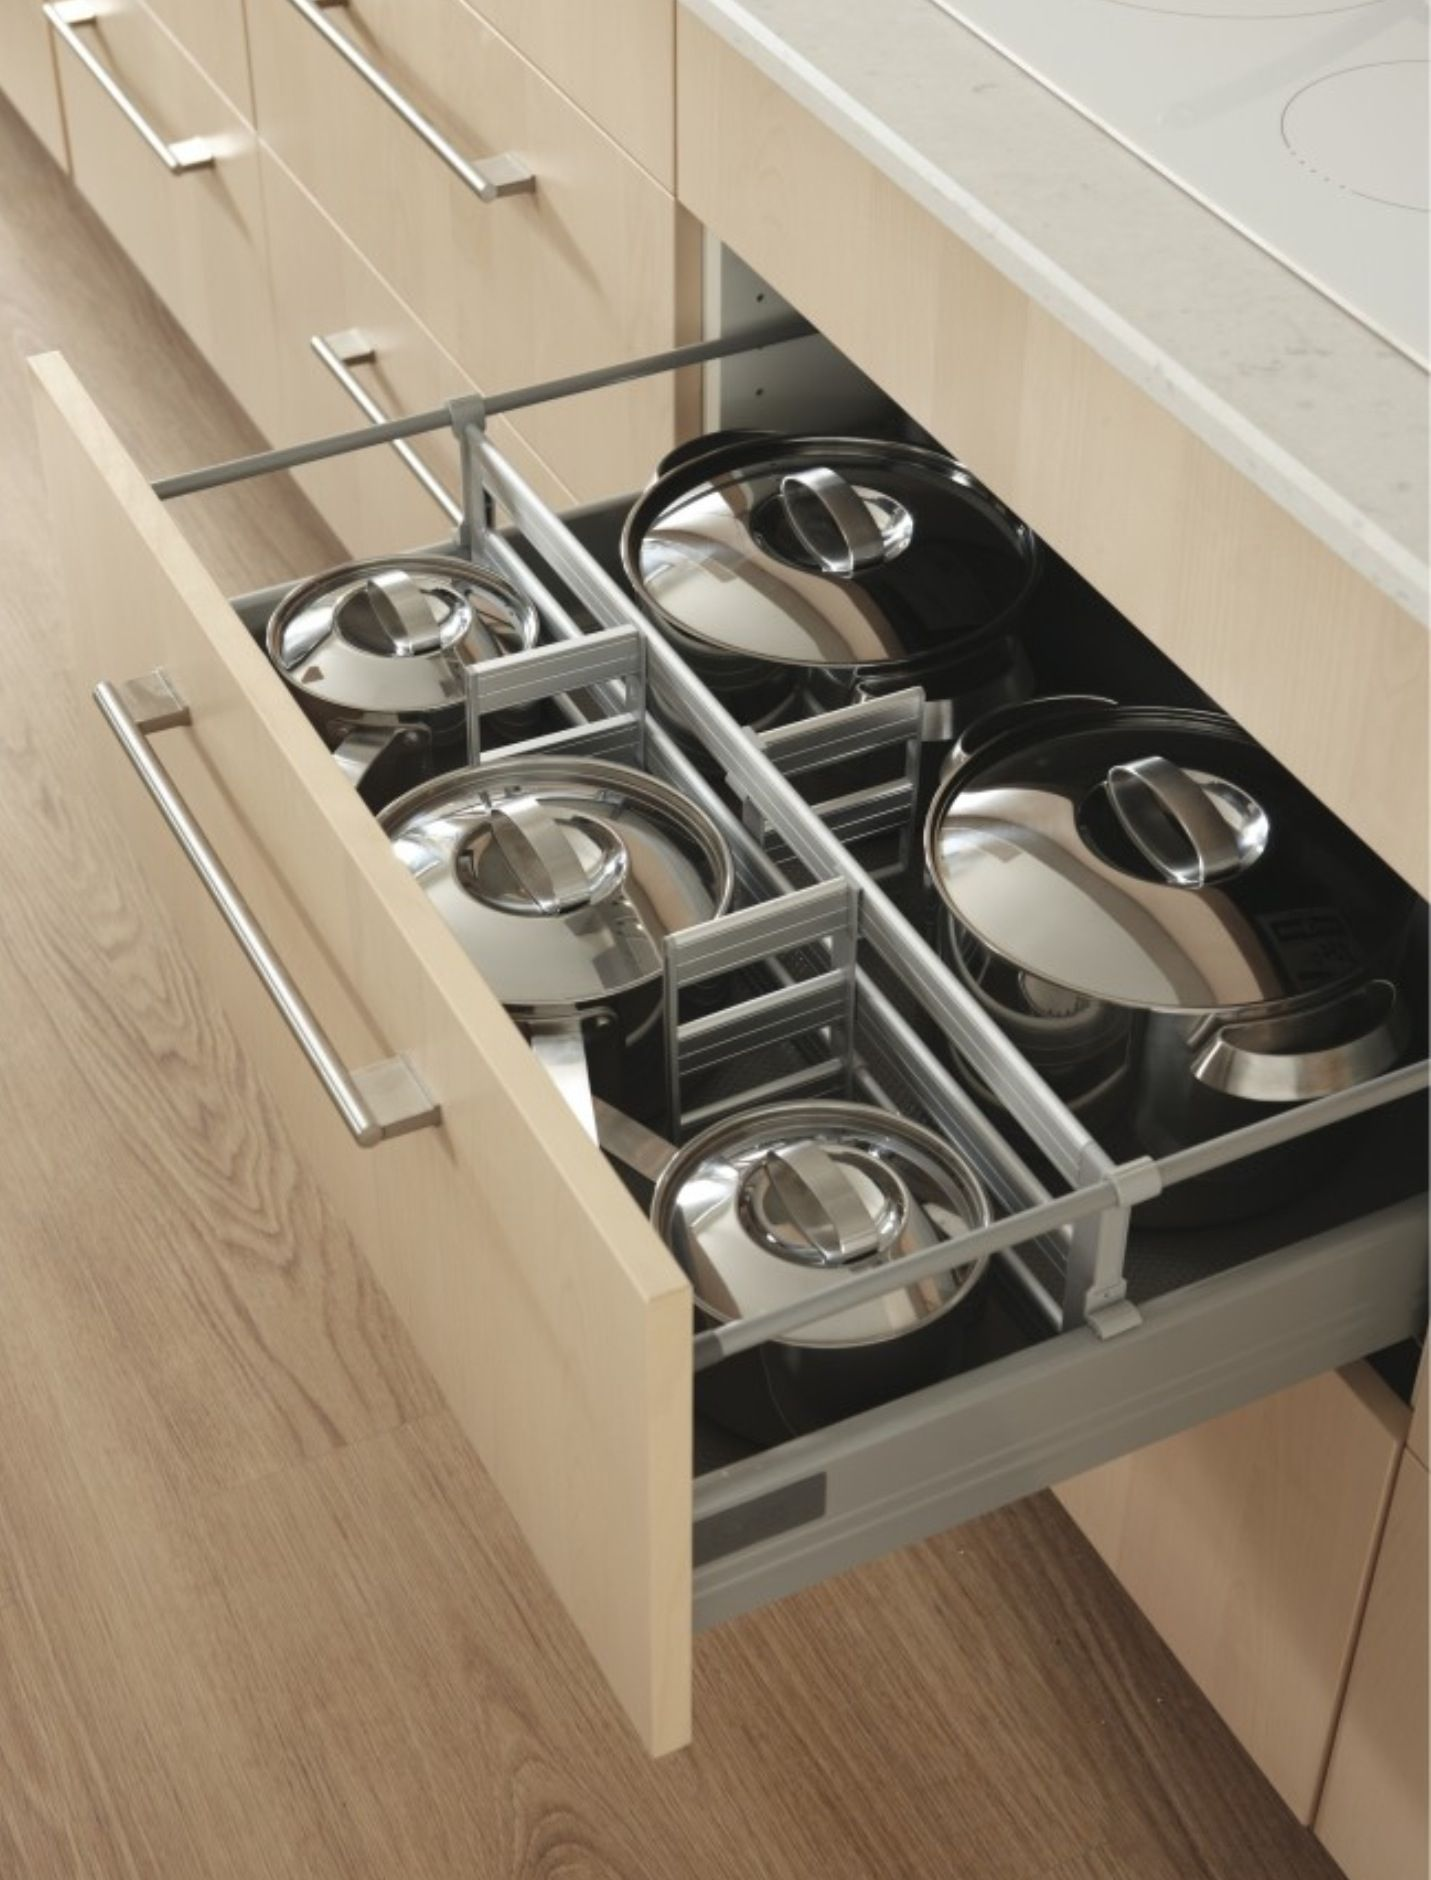 Organised Pan Draws Kitchen Cabinets Fittings Kitchen Cabinet Storage Kitchen Cabinet Accessories